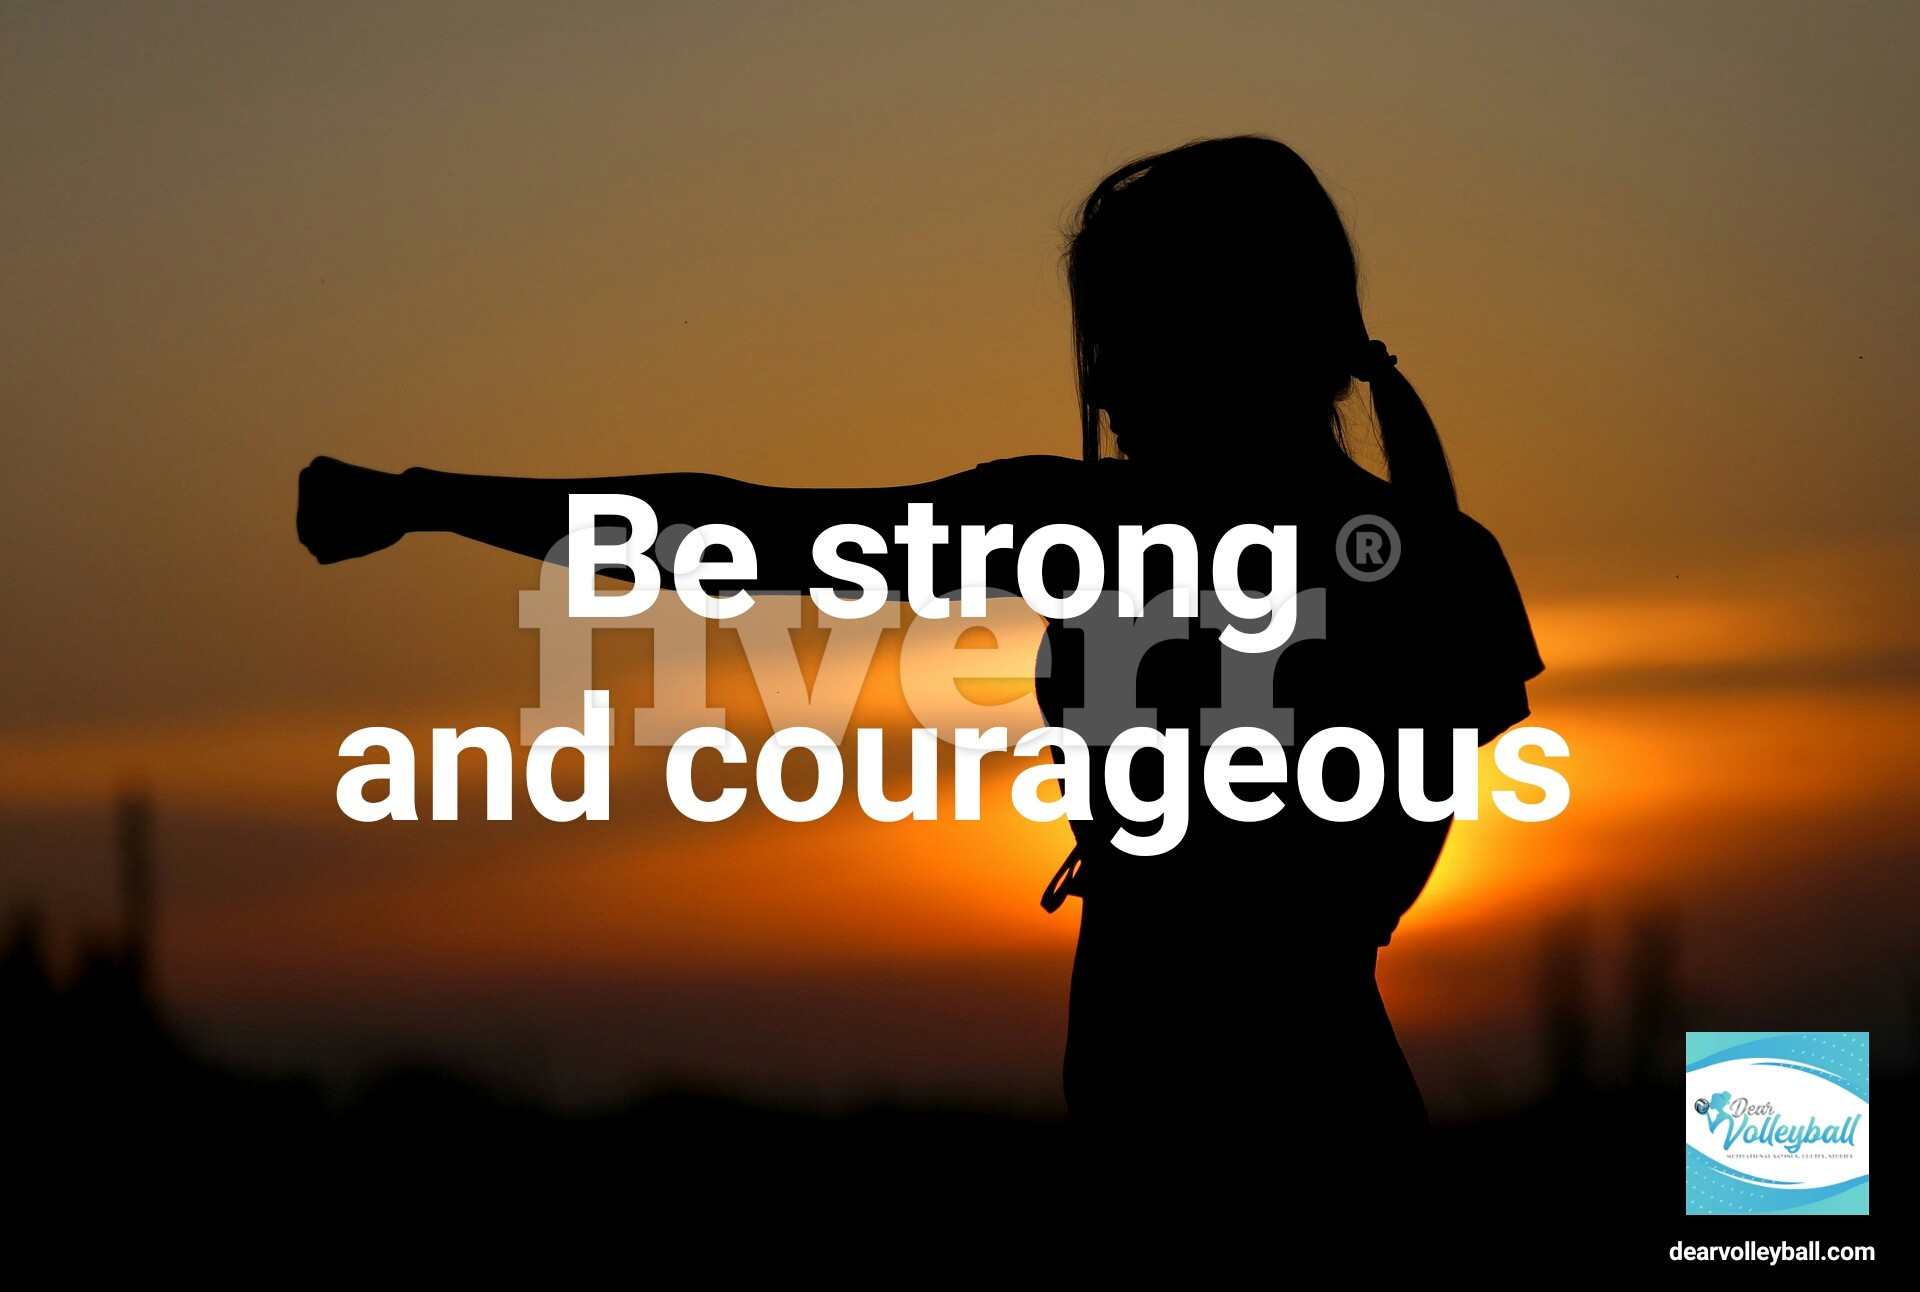 Be strong and courageous and 54 short inspirational quotes on DearVolleyball.com